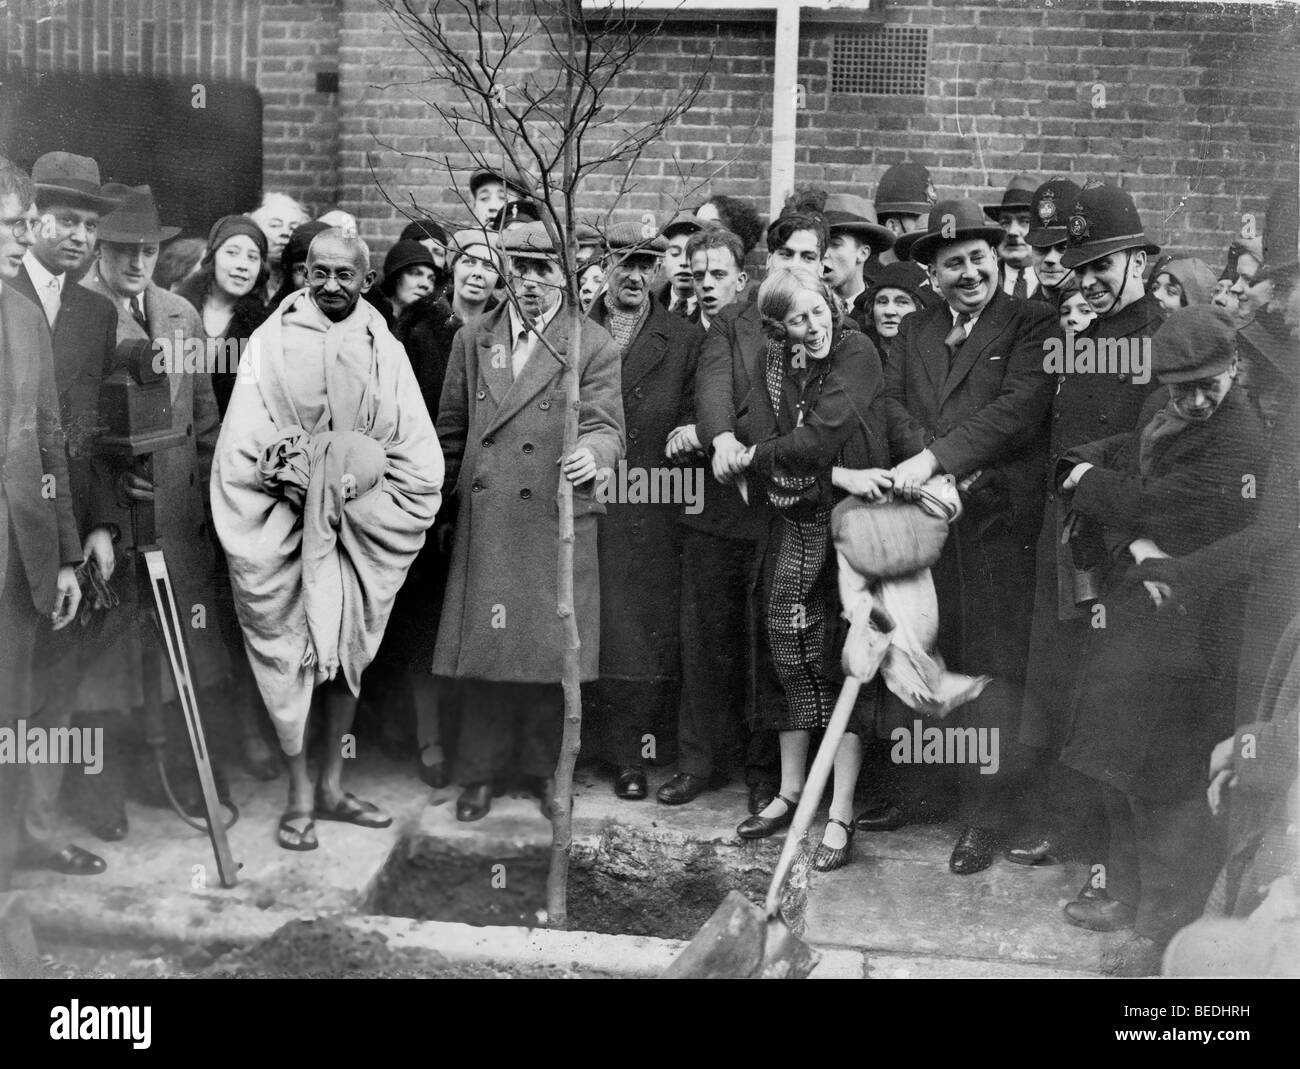 As a token of thanks, MAHATMA GANDHI, second left from tree, planted a tree outside Kingsley Hall in London on December - Stock Image